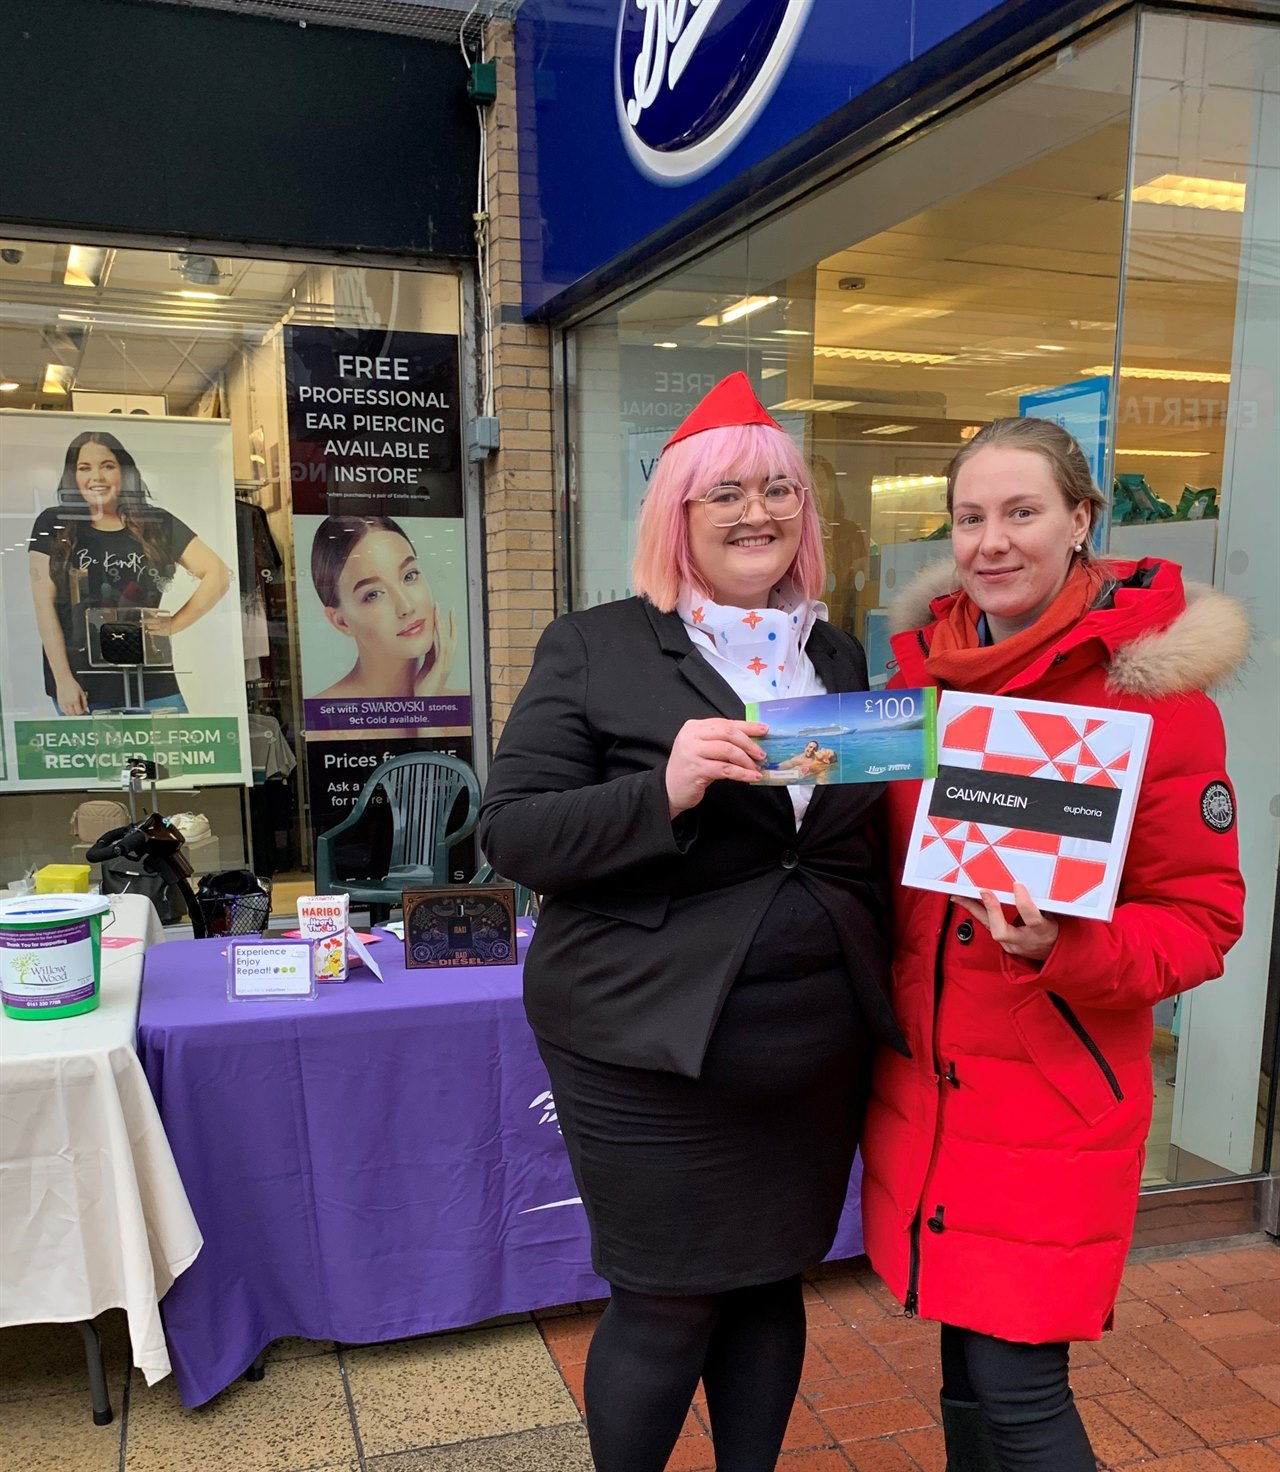 Shopping centre flying high after a £600 prize fund giveaway attracted hundreds of shoppers during mid-term break